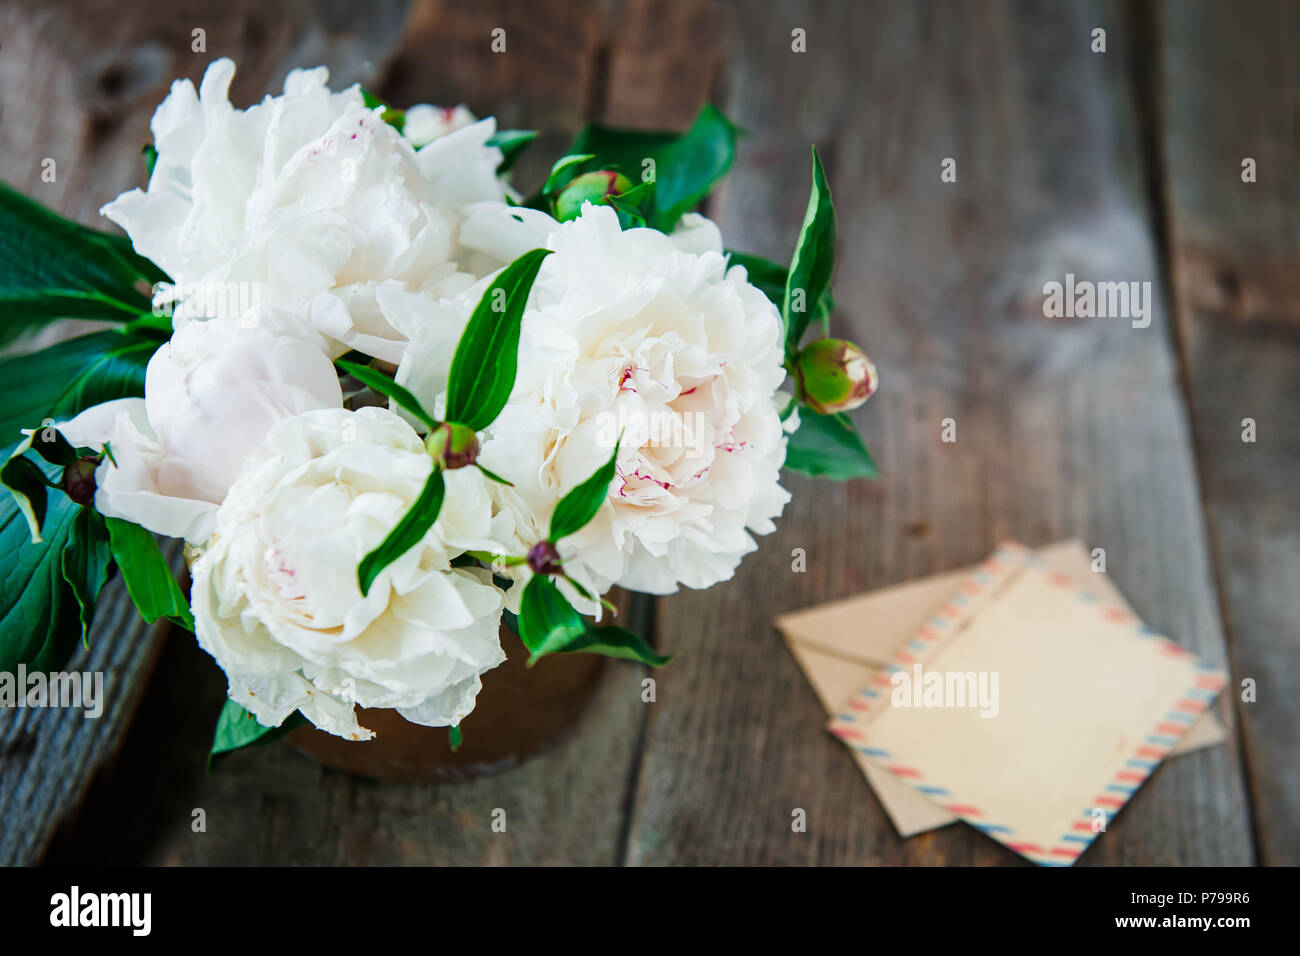 Top View White Peony Flowers Bouquet Blank Greeting Card And Craft